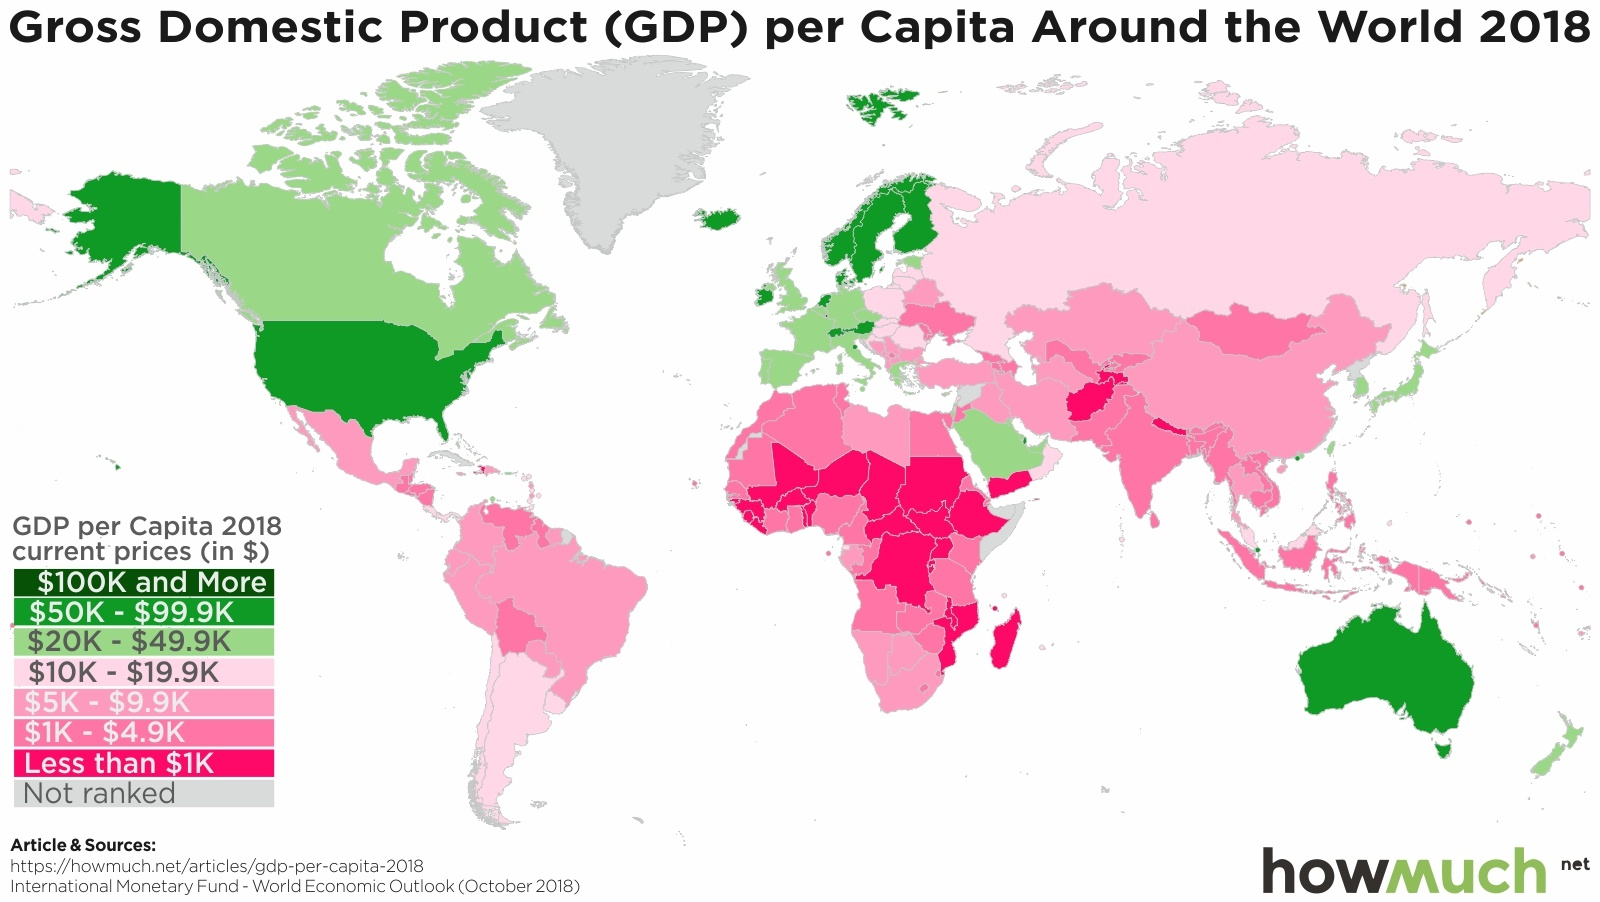 GDP per Capita by Country